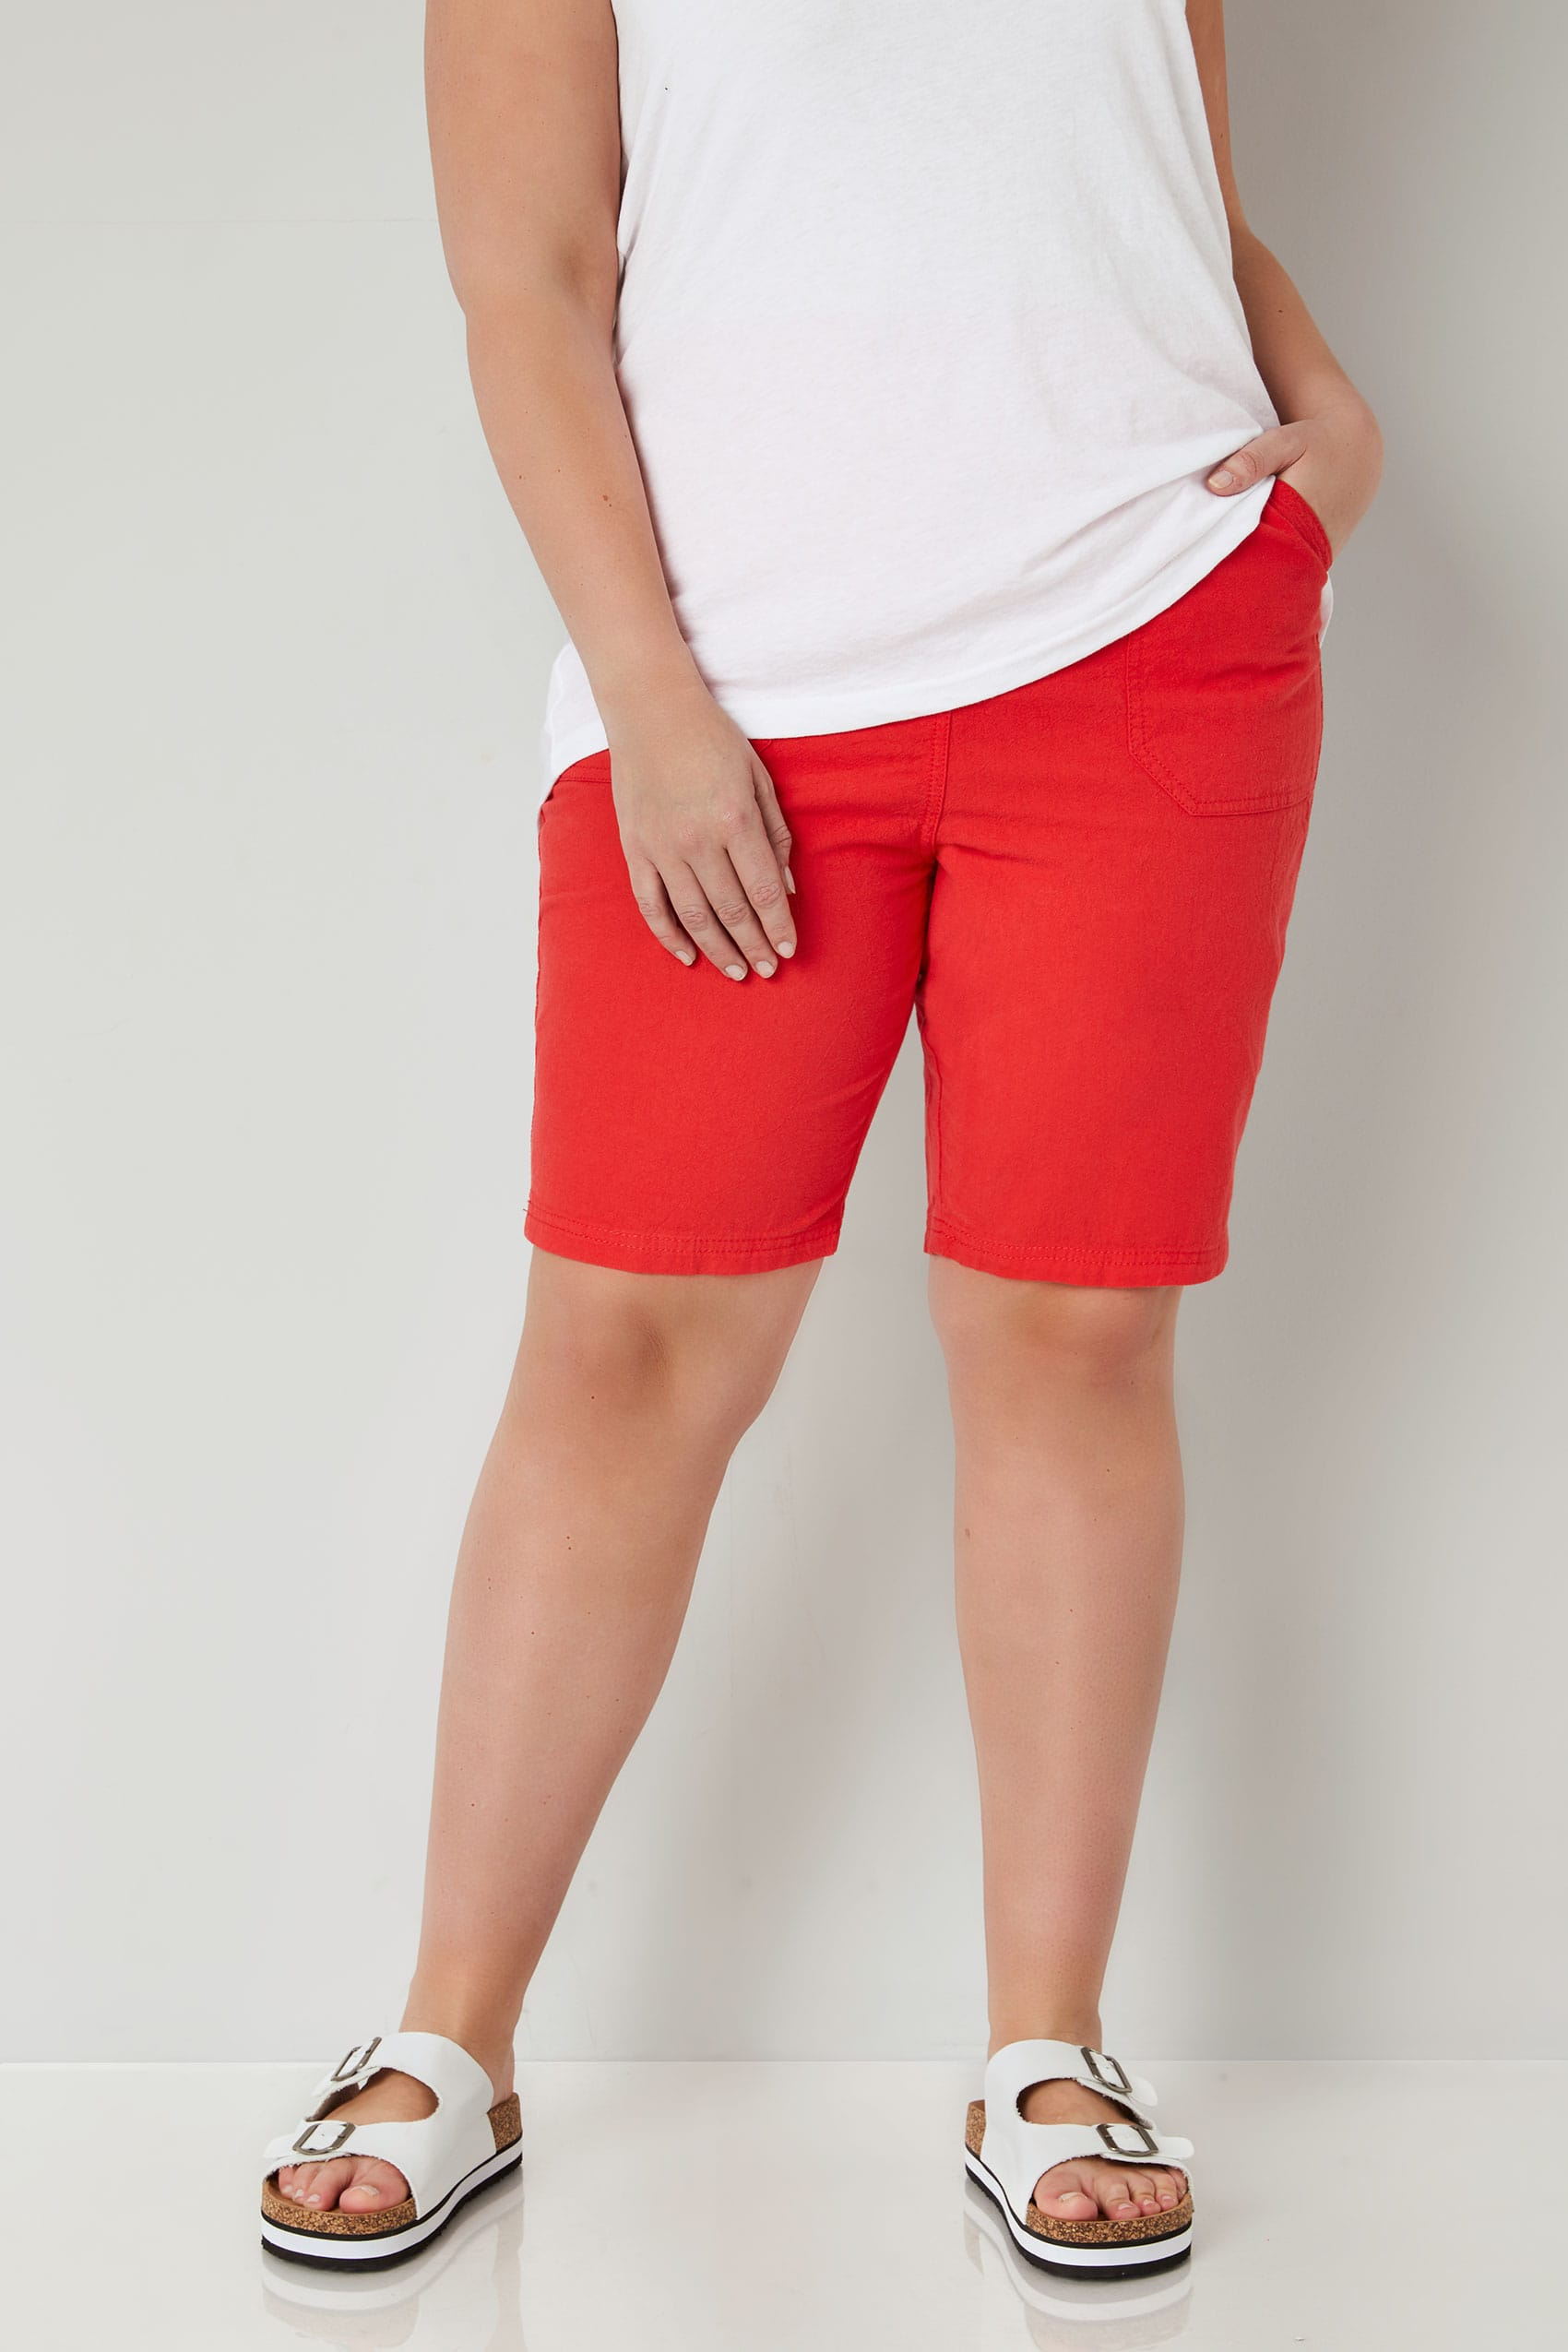 Short rouge en coton enfiler taille 44 64 - Background image of div ...